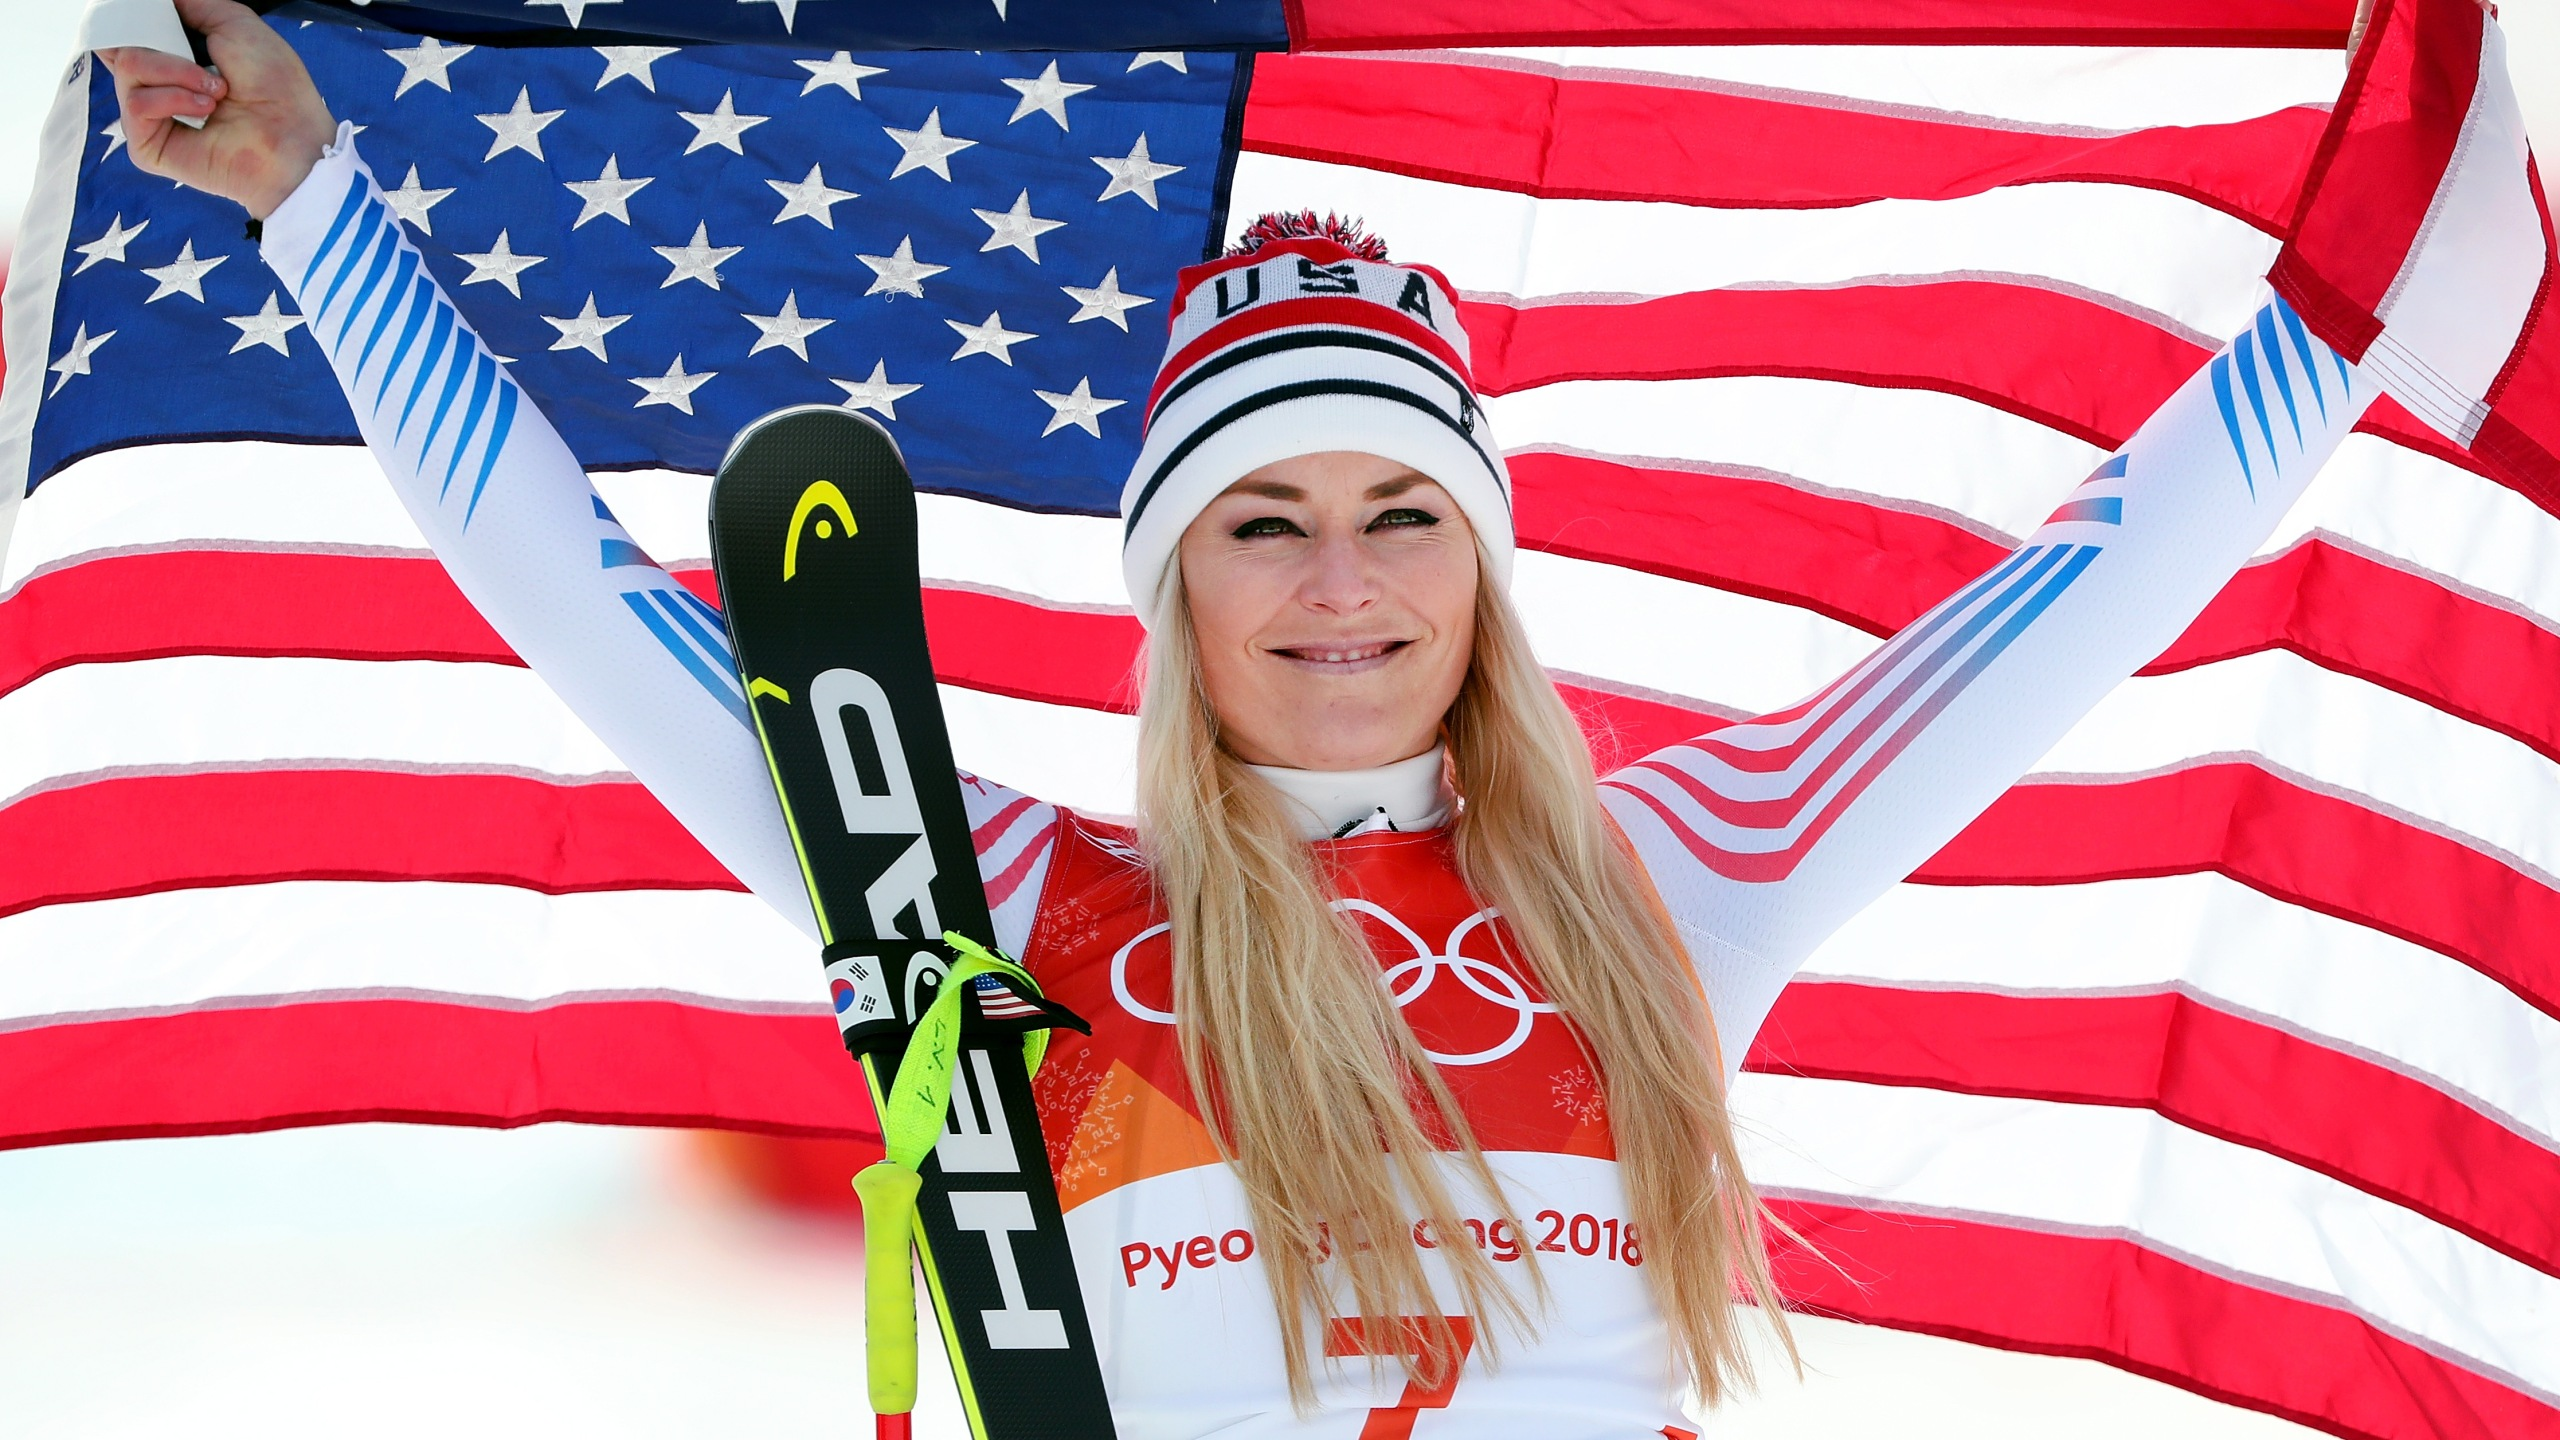 Bronze medallist Lindsey Vonn of the United States celebrates during the victory ceremony for the Ladies' Downhill on day 12 of the PyeongChang 2018 Winter Olympic Games at Jeongseon Alpine Centre on February 21, 2018 in Pyeongchang-gun, South Korea. (Credit: Tom Pennington/Getty Images)